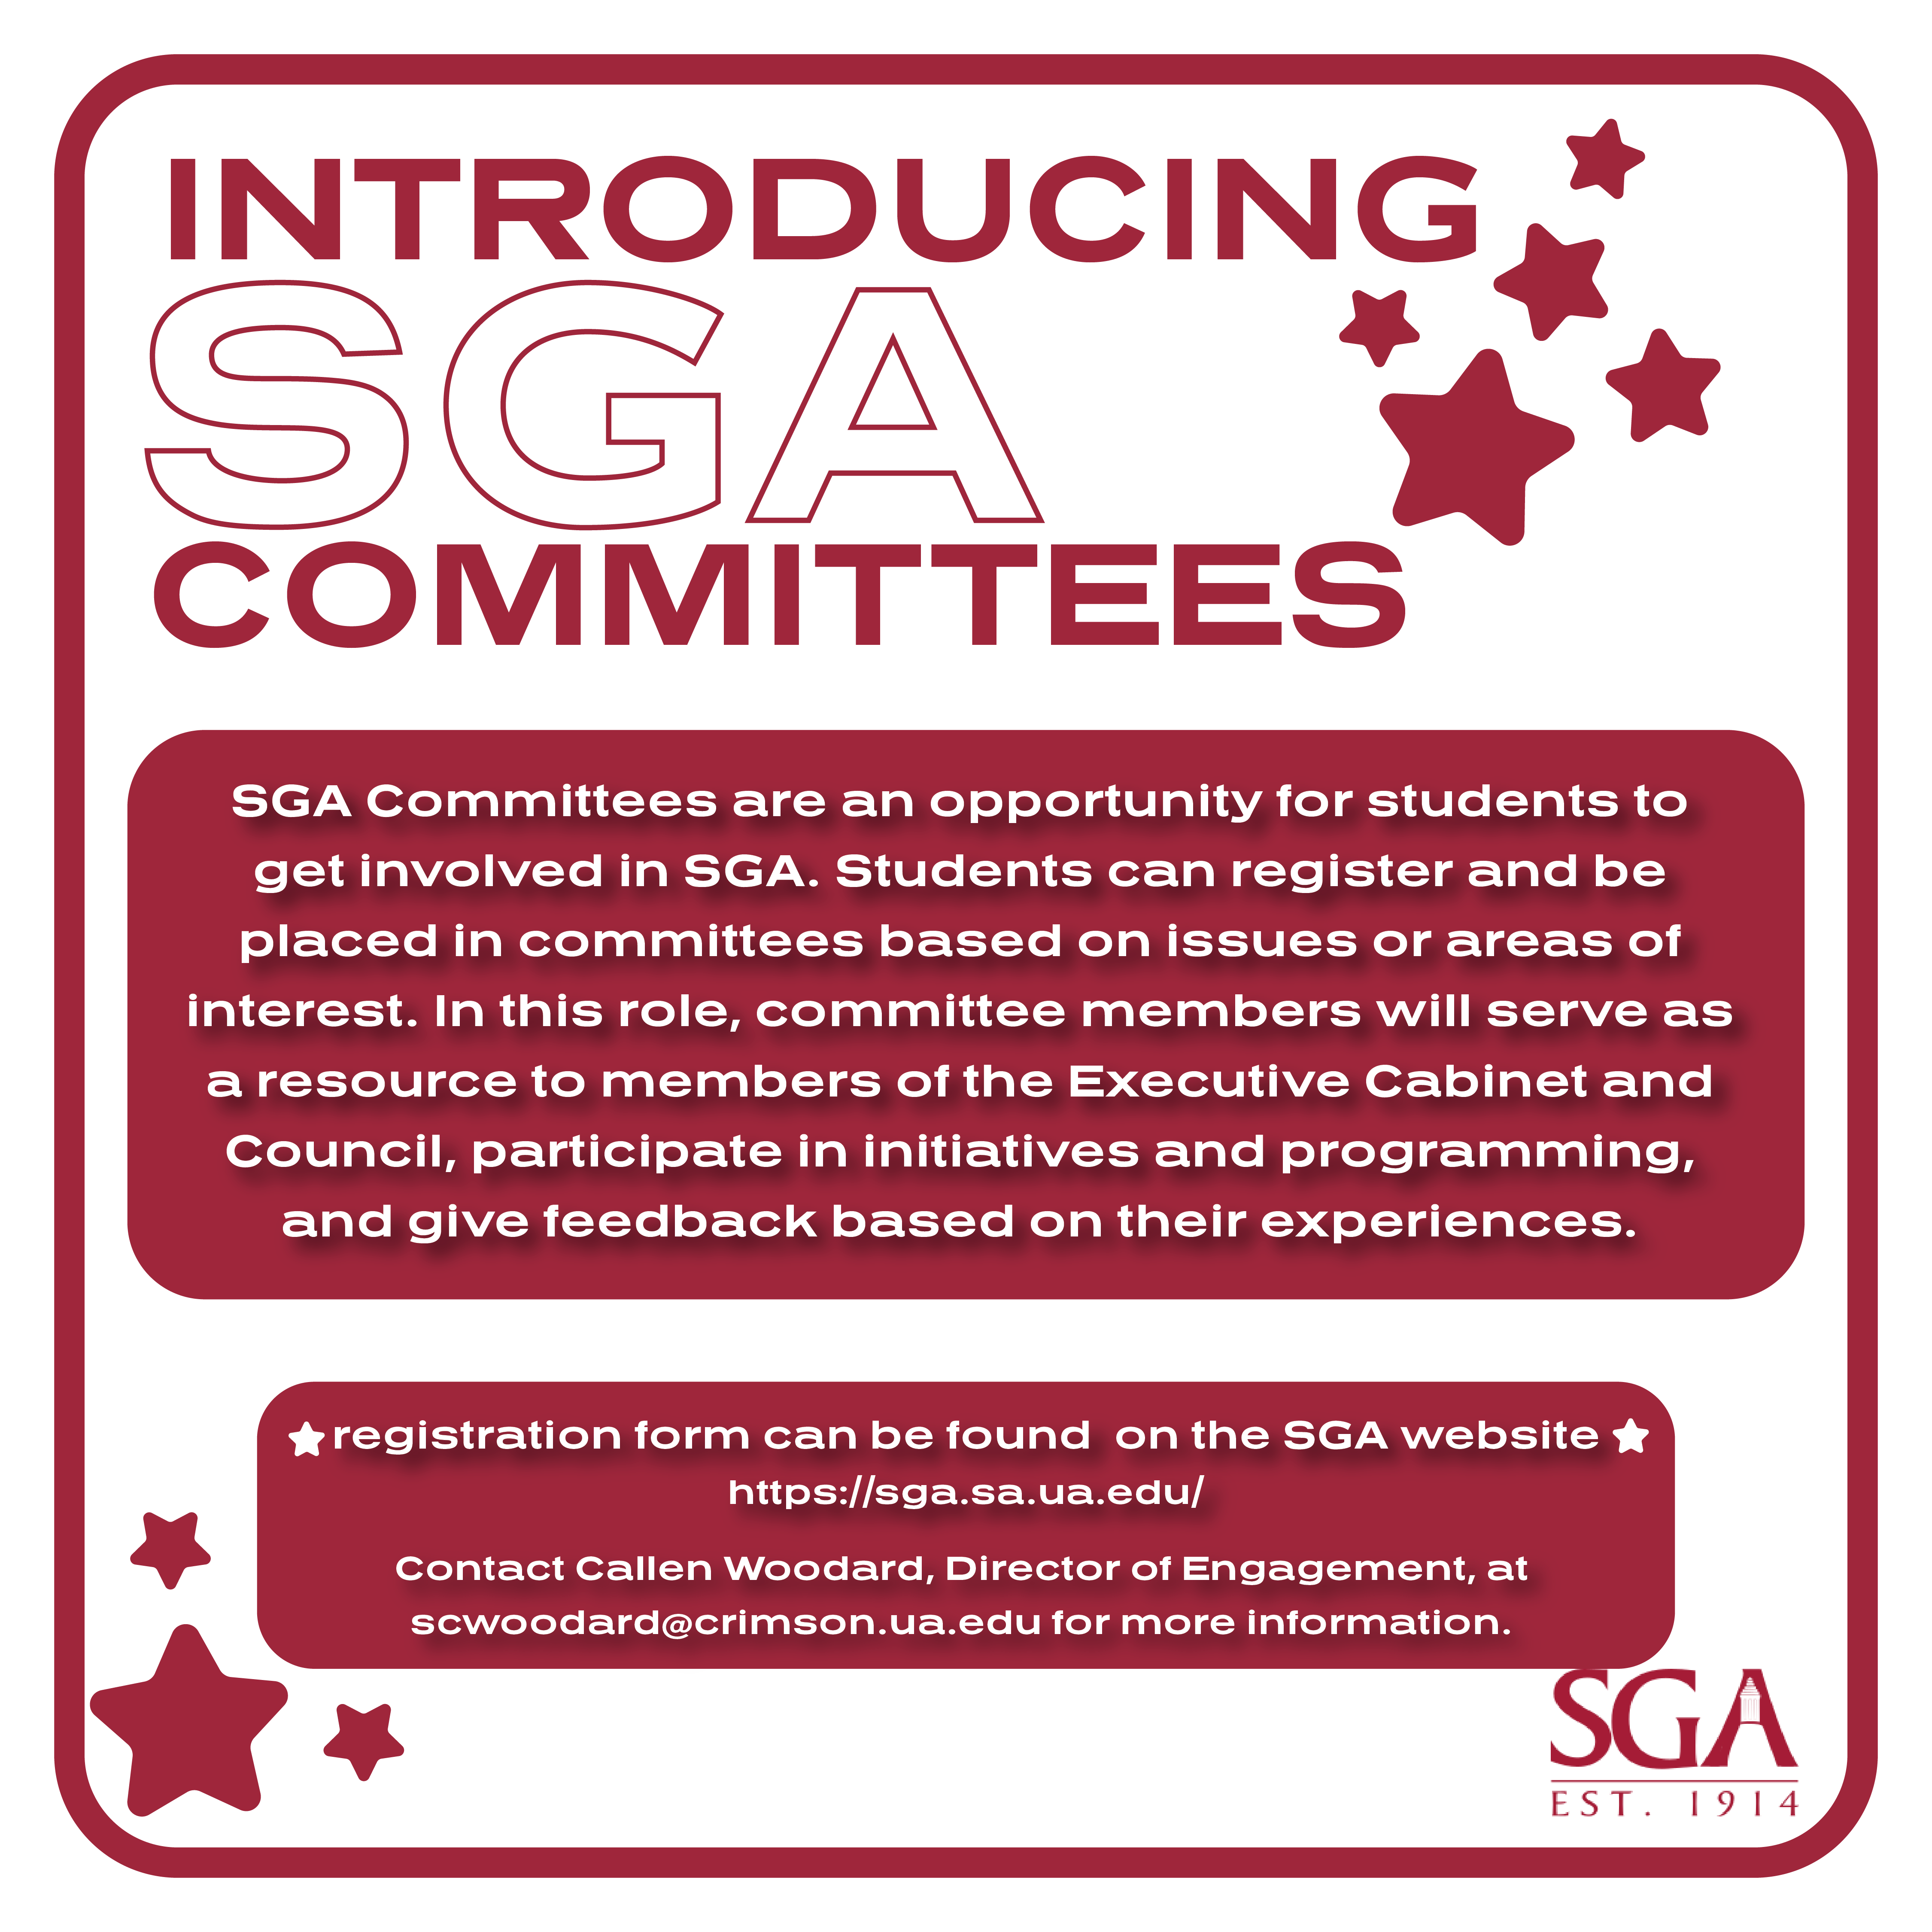 SGA Committees are an opportunity for students to get involved in SGA. Students can register and be placed in committees based on issues or areas of interest. In this role, committee members will serve as a resource to members of the Executive Cabinet and Council, participate in initiatives and programming, and give feedback based on their experience.